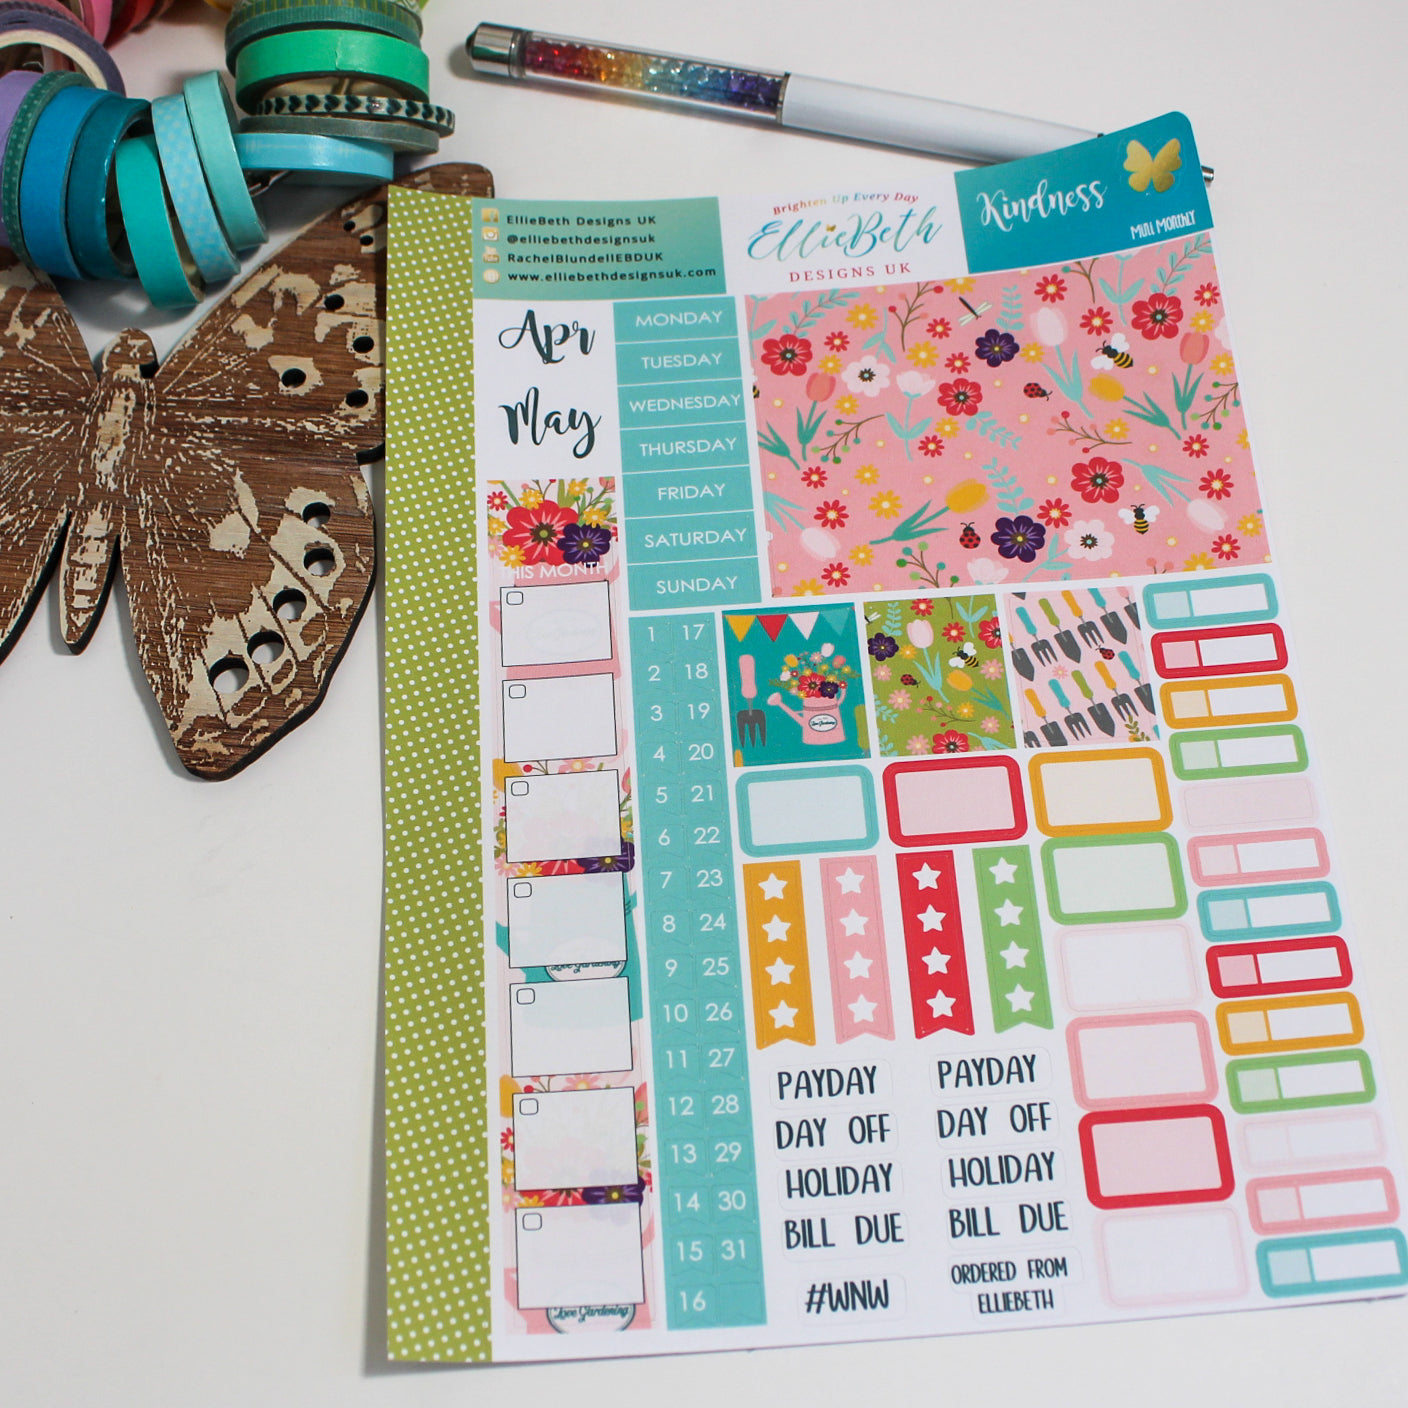 'Kindness' - Mini Monthly (Hobonichi Weeks compatible) - A5 binder ready planner stickers